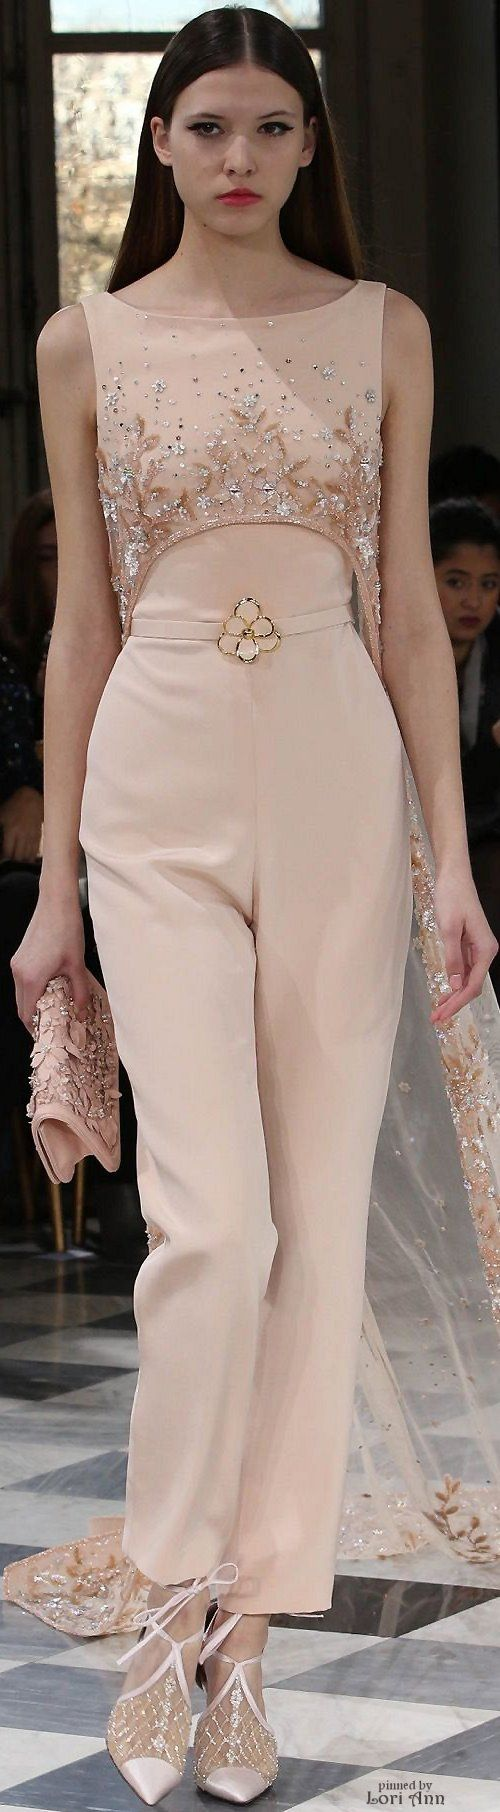 Georges Hobeika Couture Spring 2016- I like the idea of a sleek pantsuit in this color and fit.: